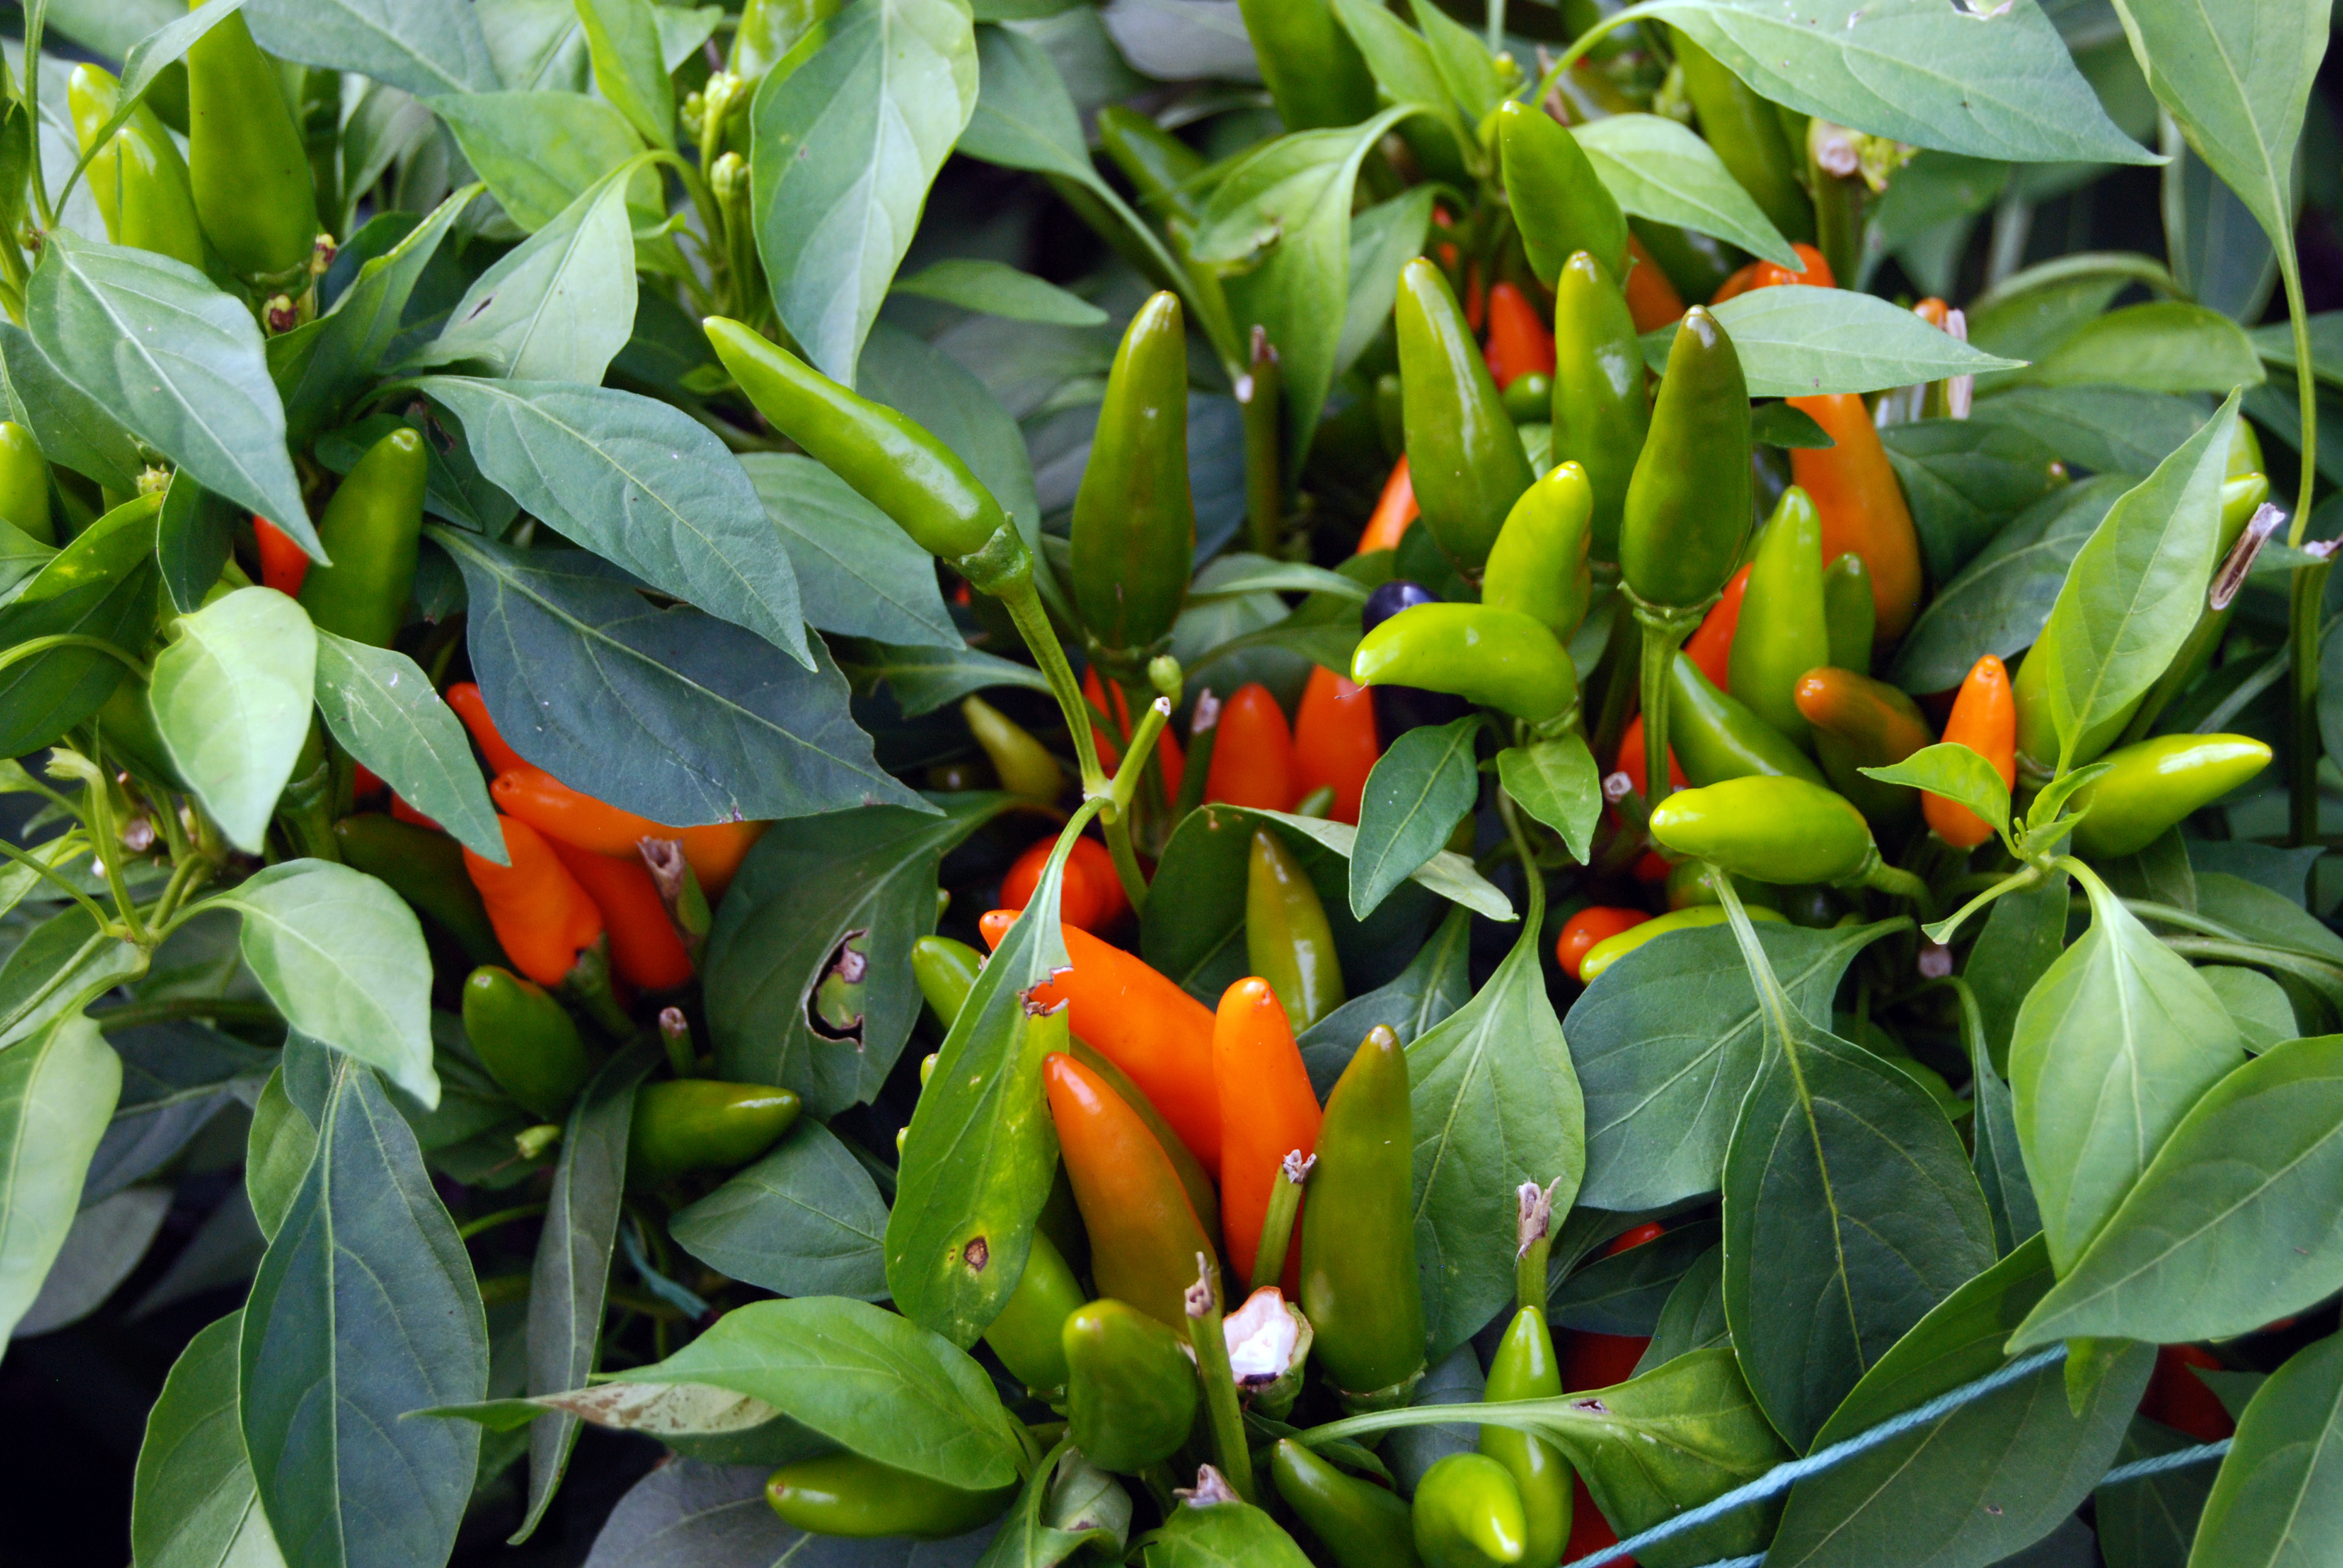 Image of sweet and chili peppers